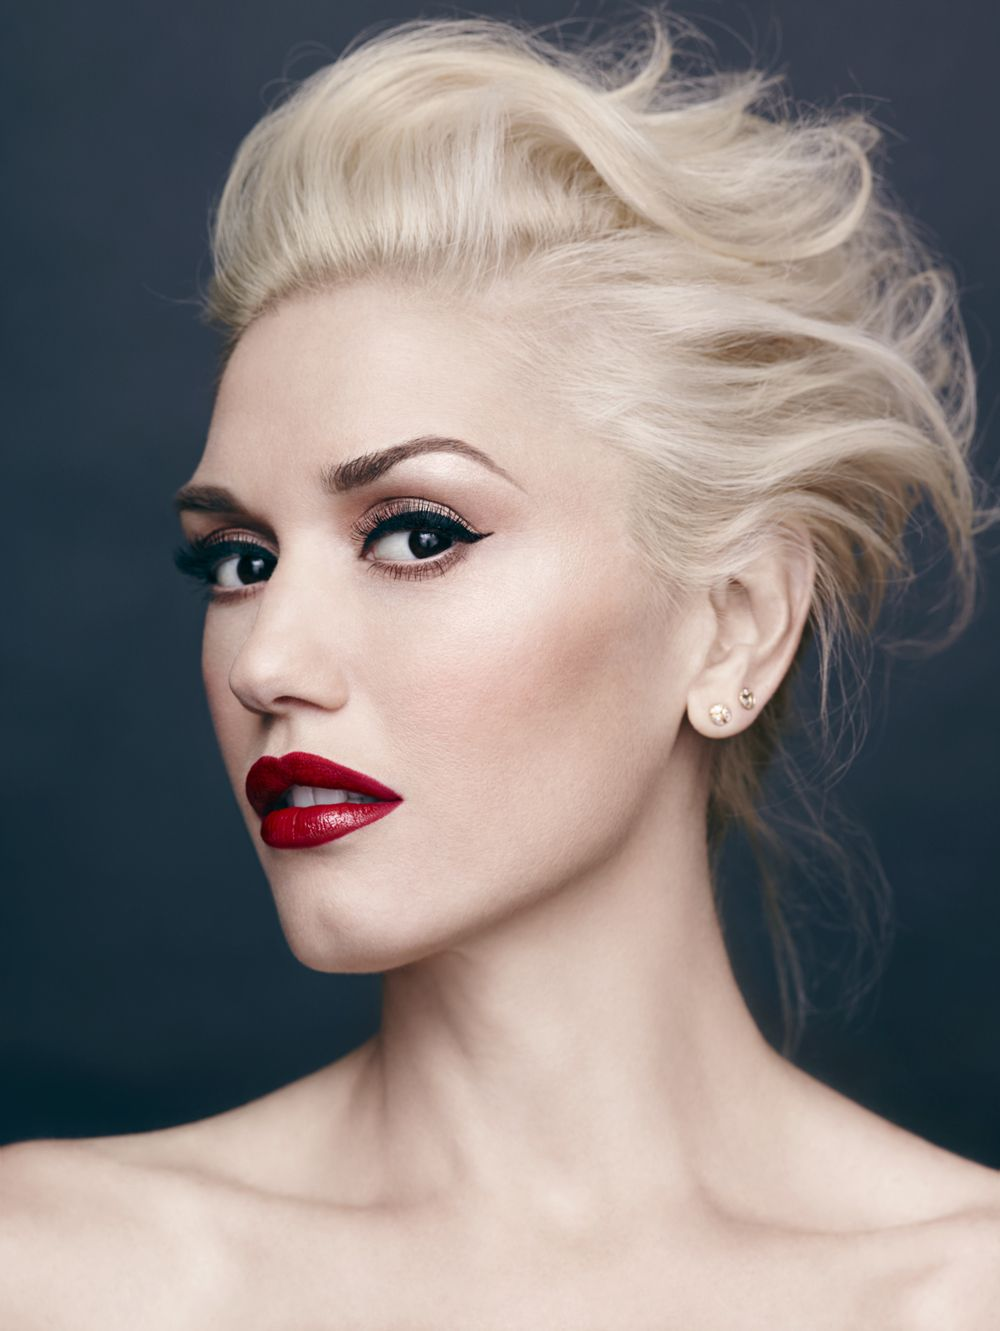 Best 25+ Gwen stefani no makeup ideas on Pinterest | Gwen ... гвен стефани песни